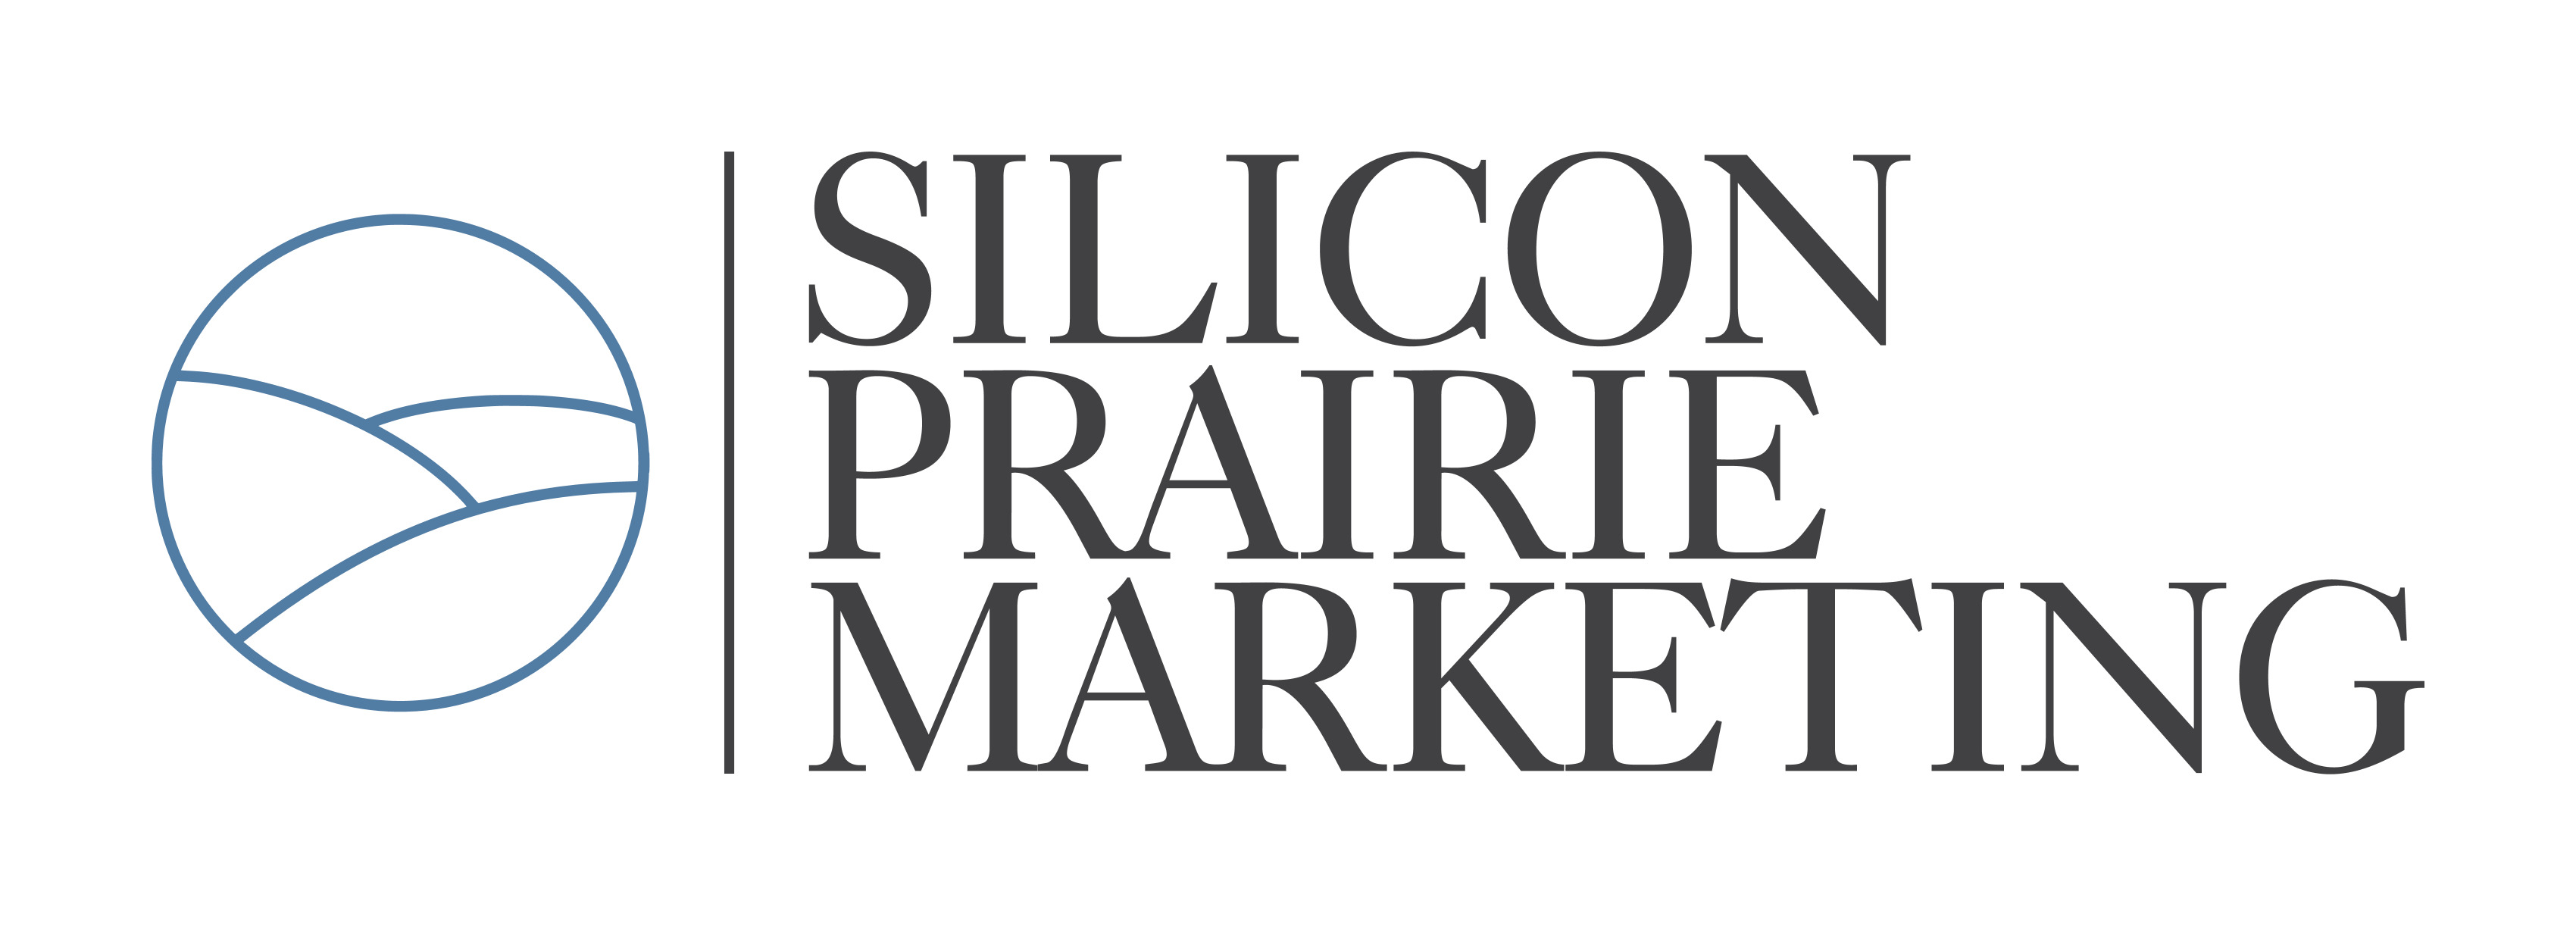 Silicon Prairie Marketing